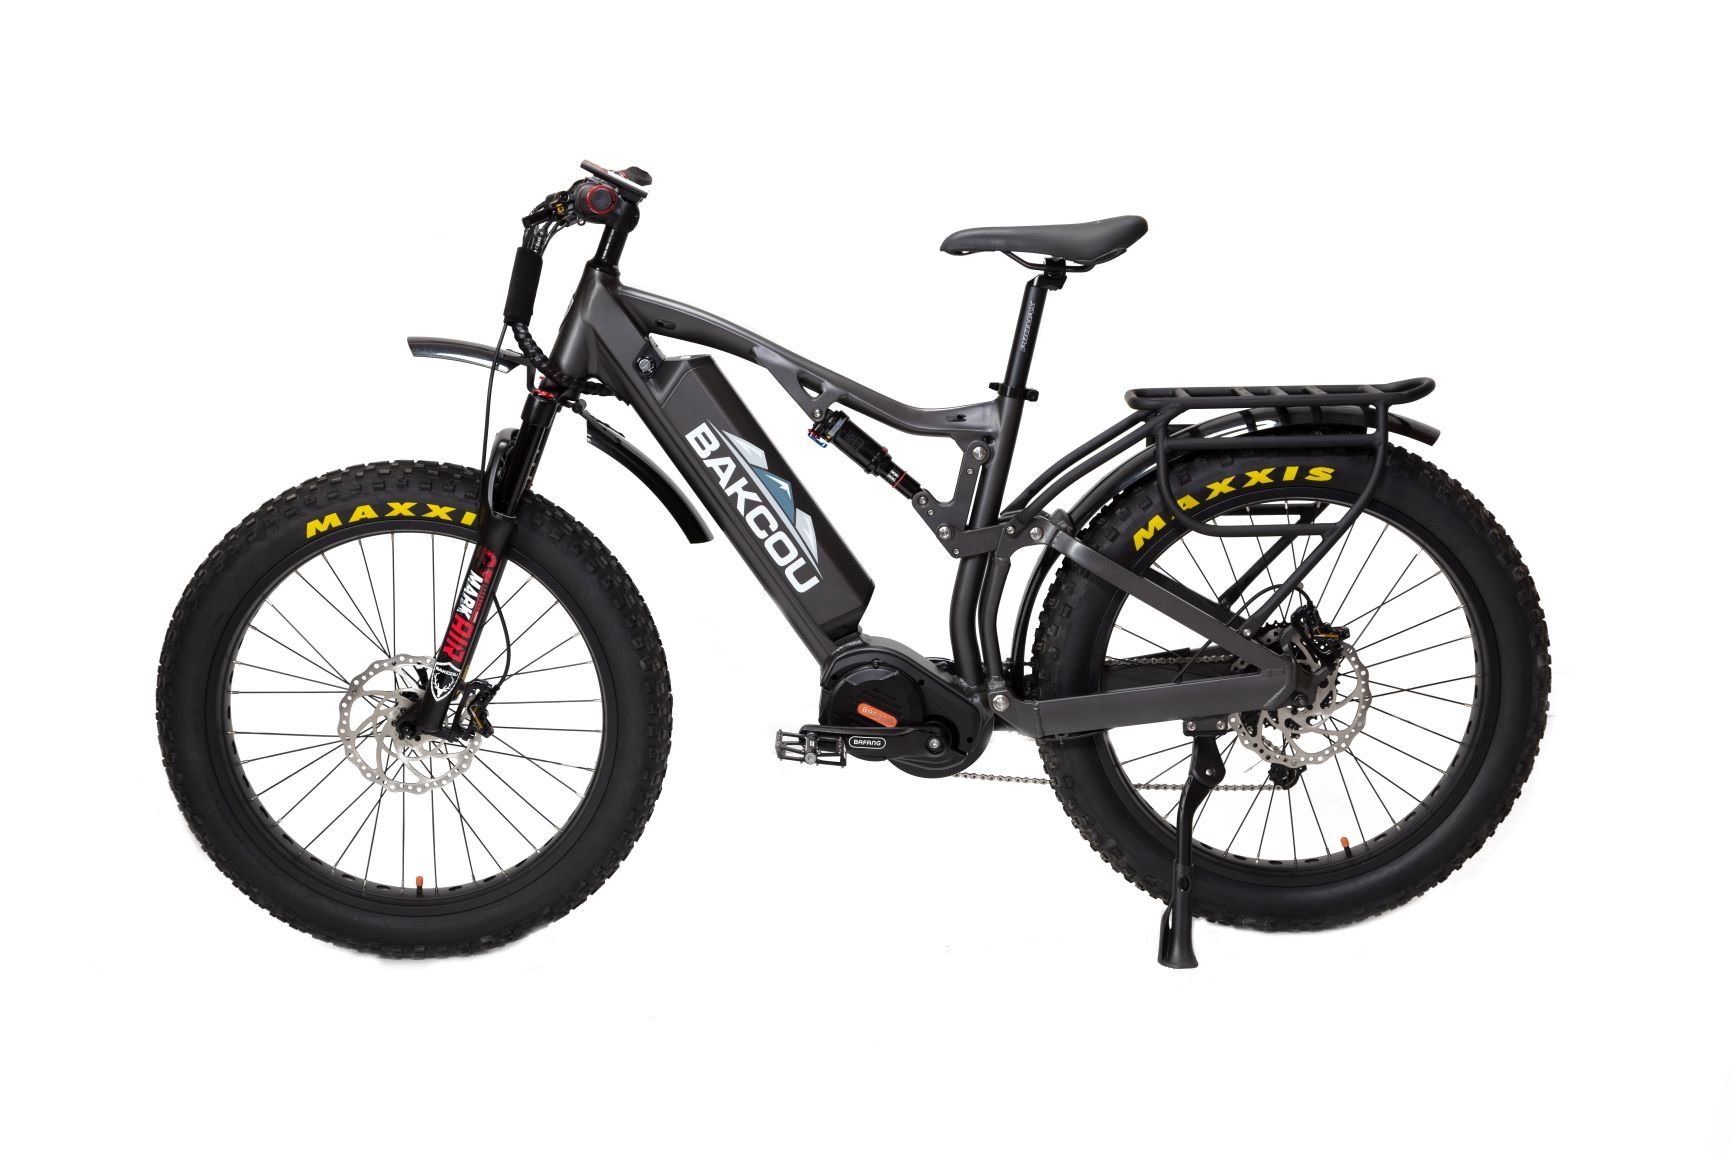 **FINANCING AVAILABLE** Storm 1000W - Drop ship to your door or available in our store.